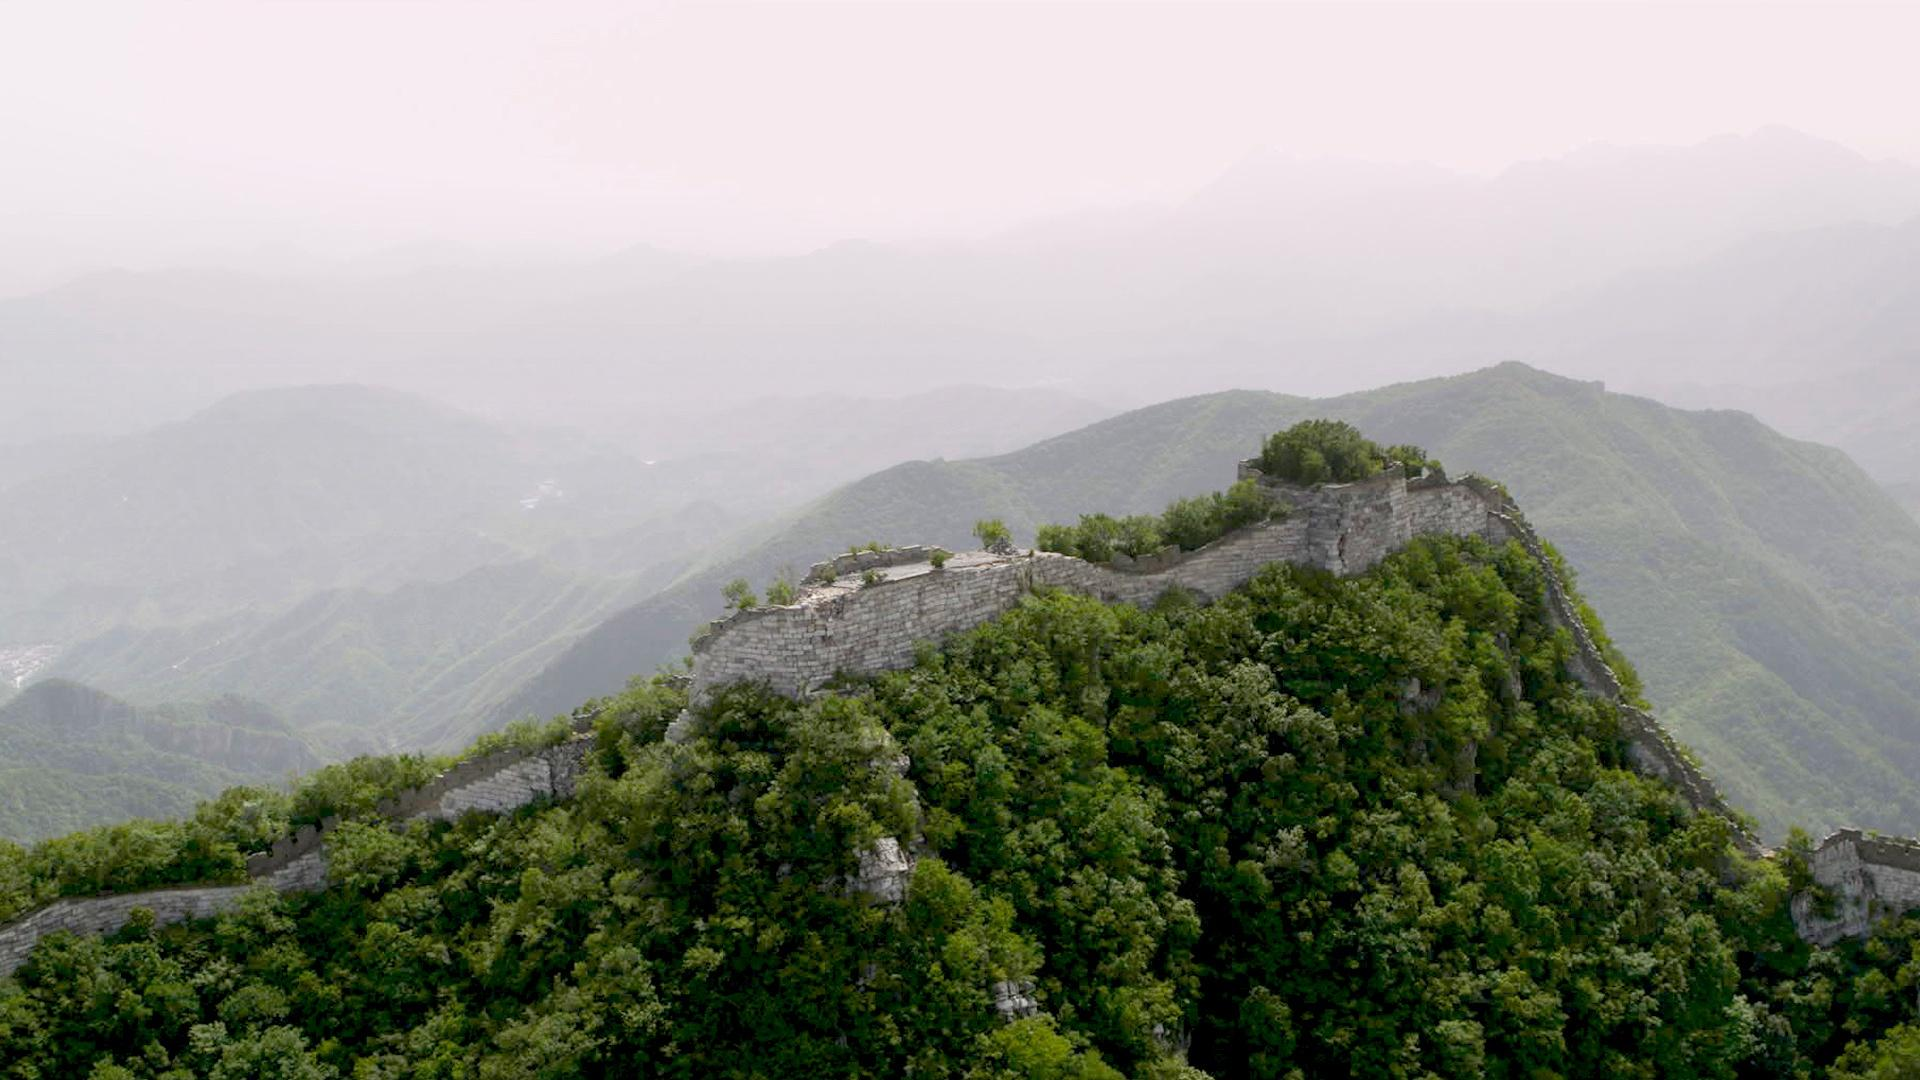 Restoring the Great Wall Made Possible by Intel Drones and AI 1920x1080